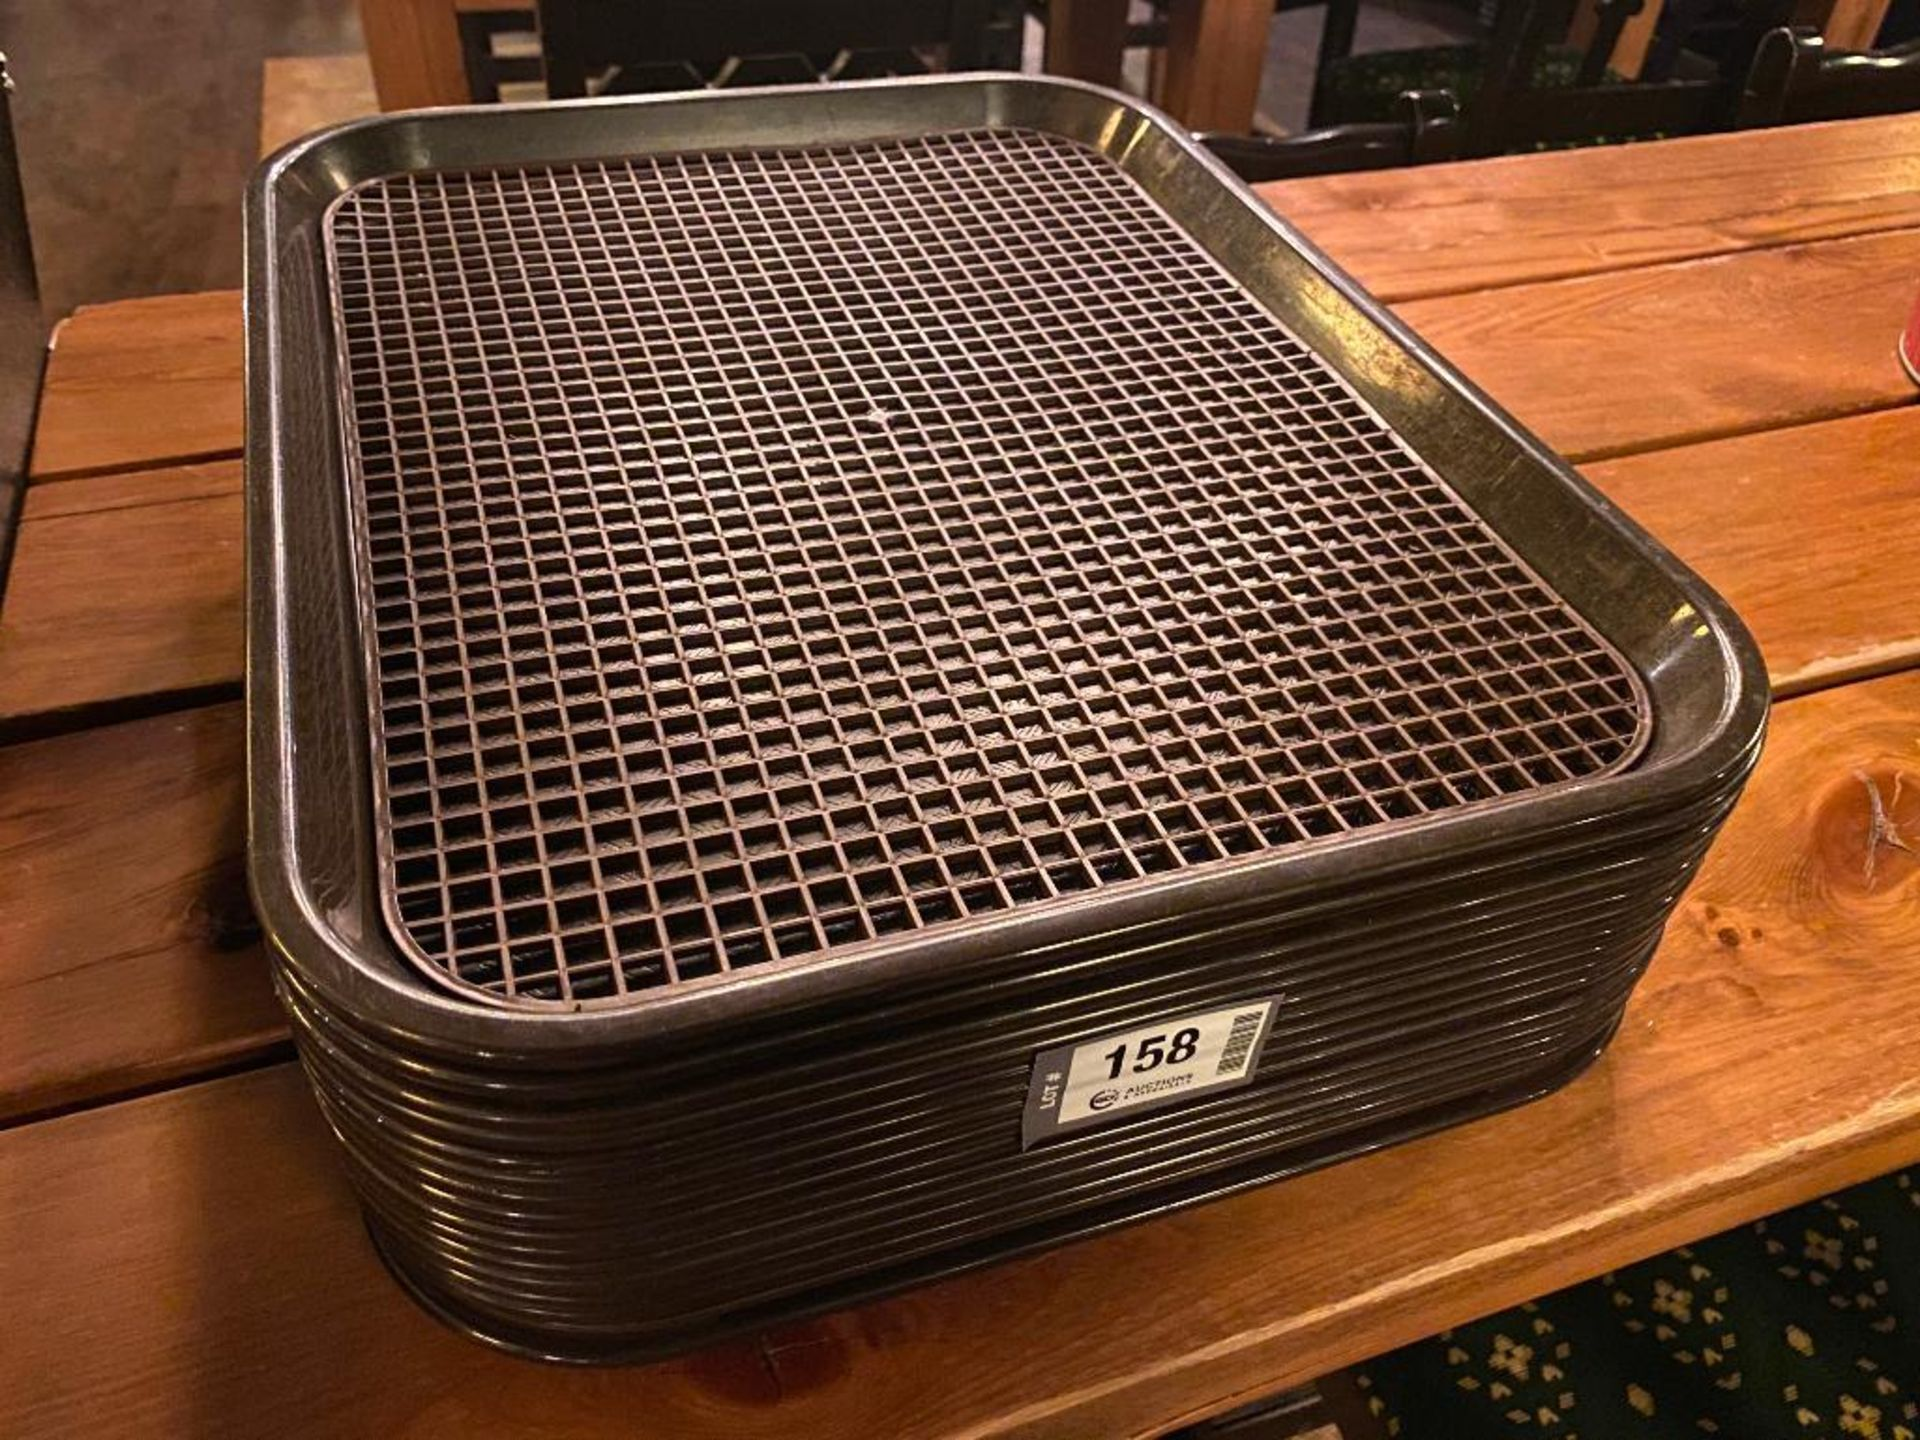 LOT OF APPROX. (15) PLASTIC CAFETERIA TRAYS WITH RUBBER MATS